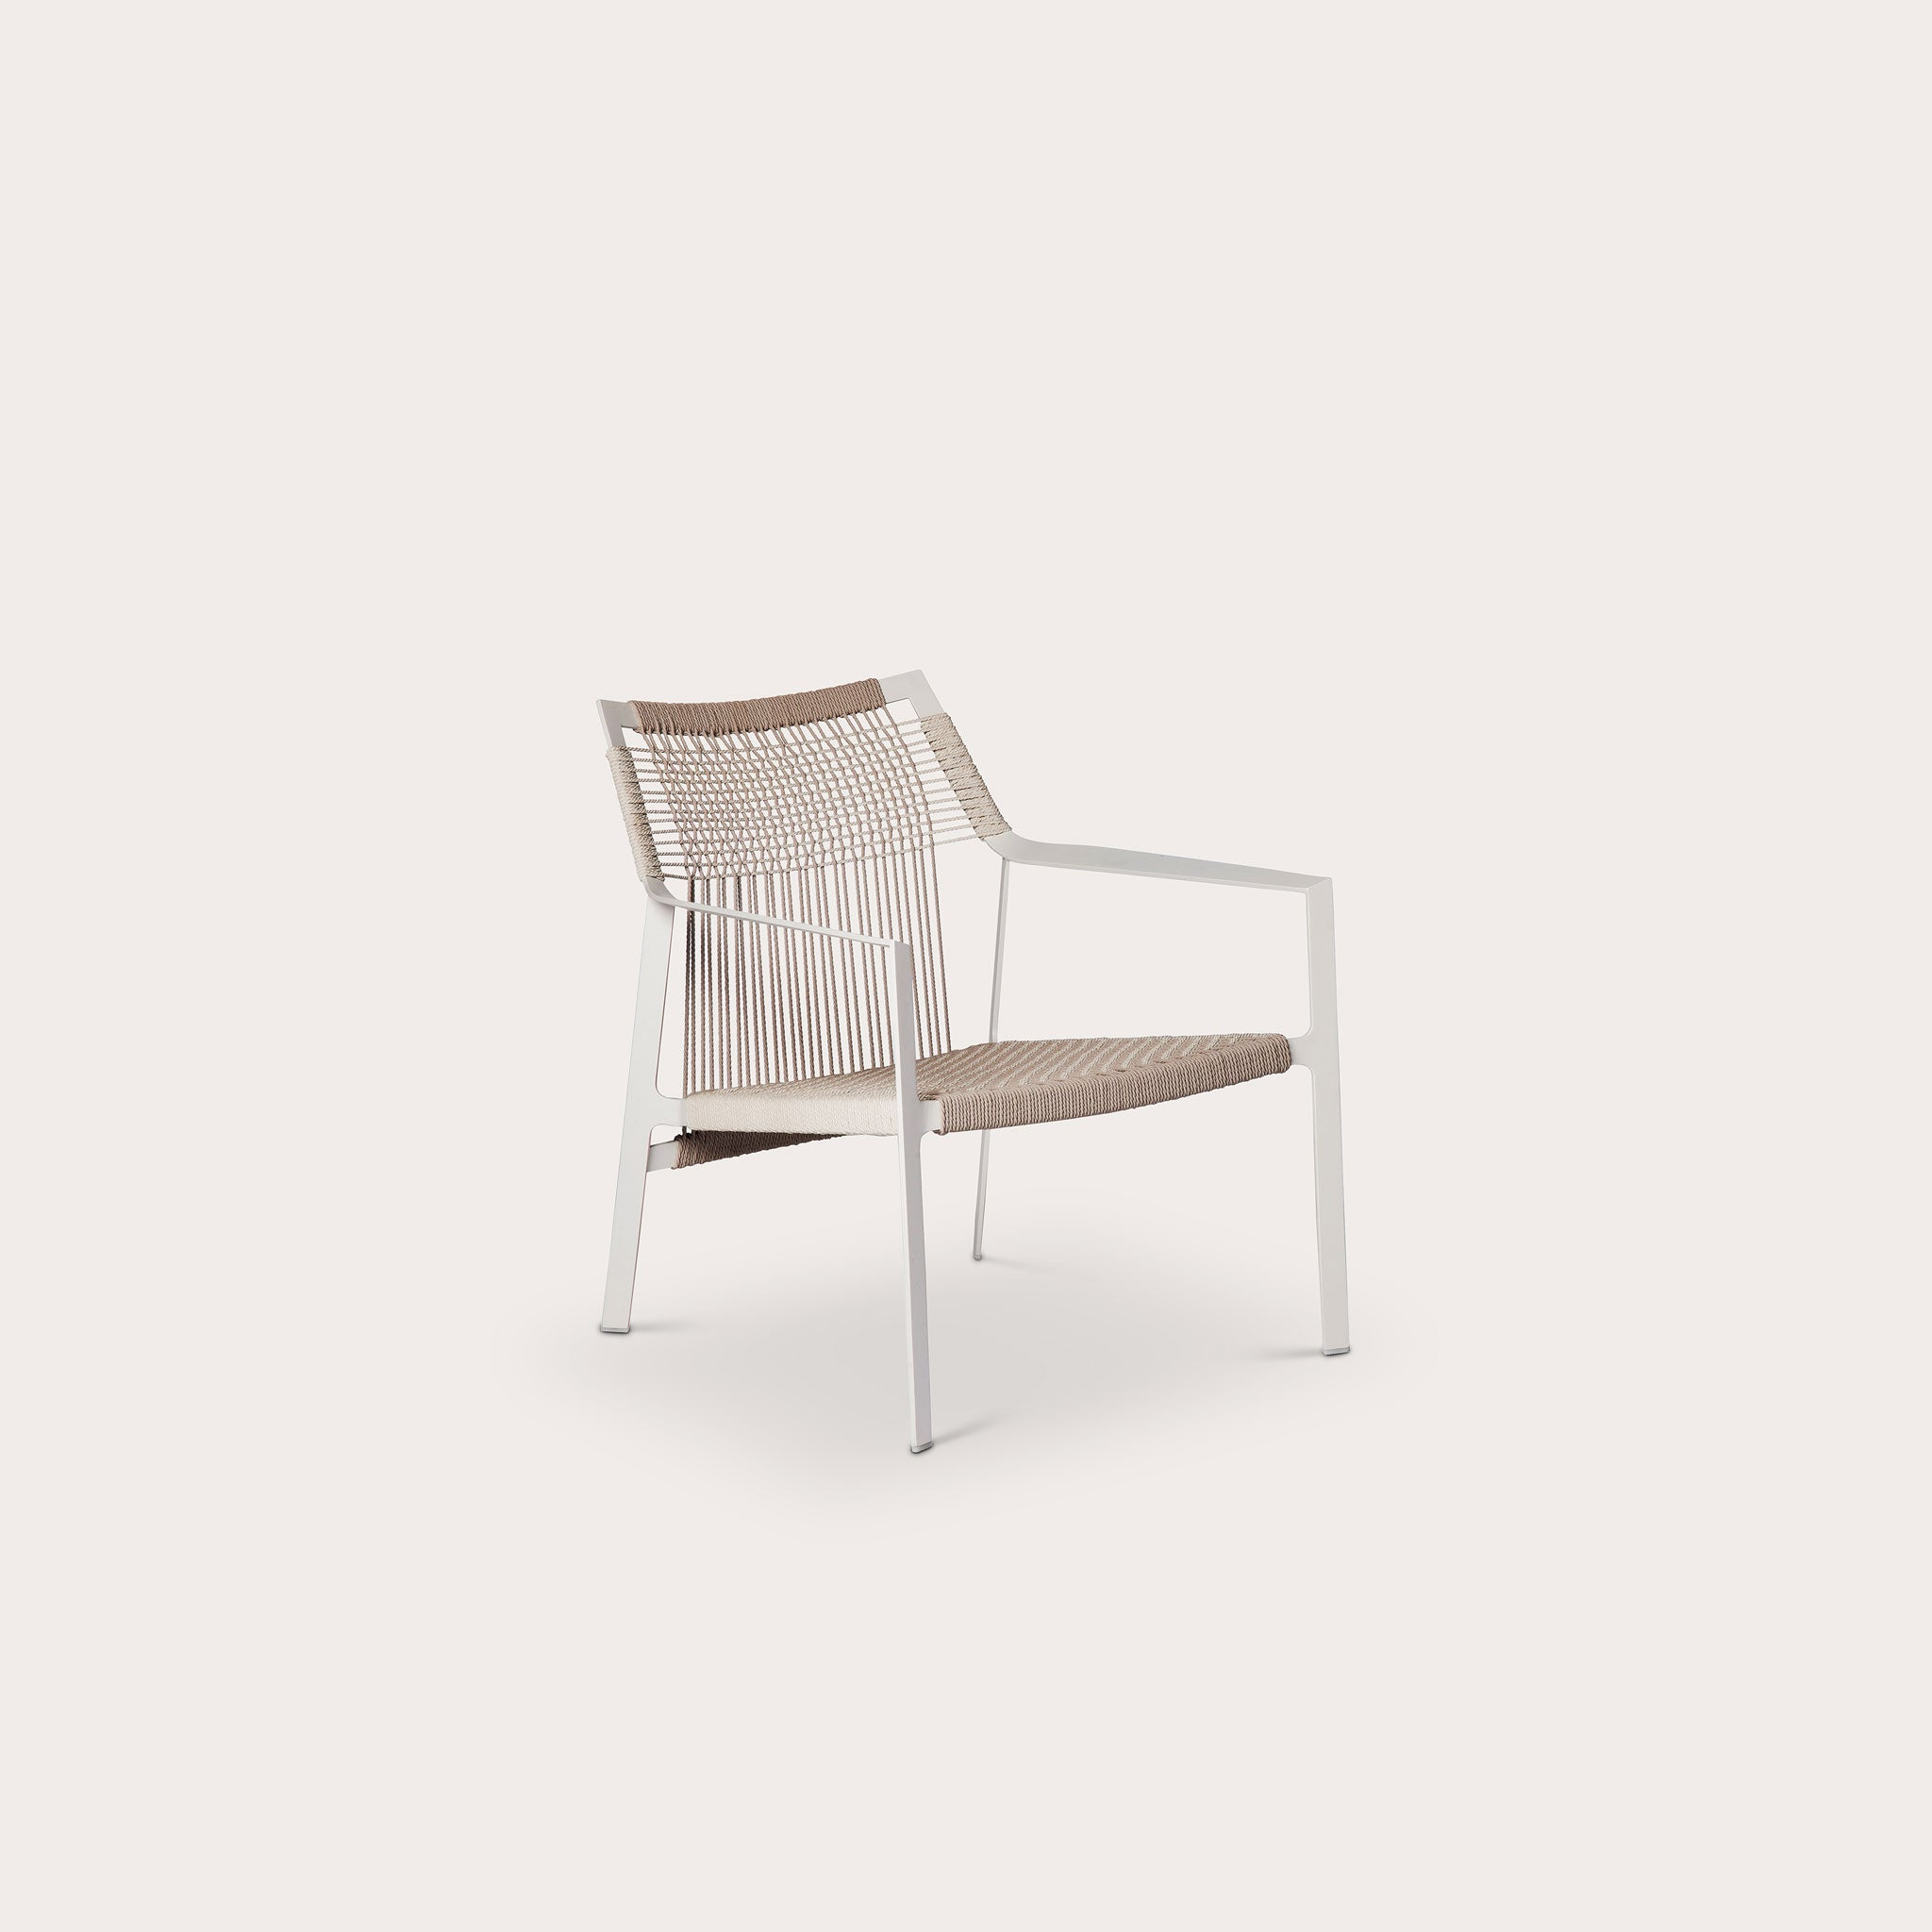 NODI Armchair Outdoor Yabu Pushelberg Designer Furniture Sku: 007-200-11371